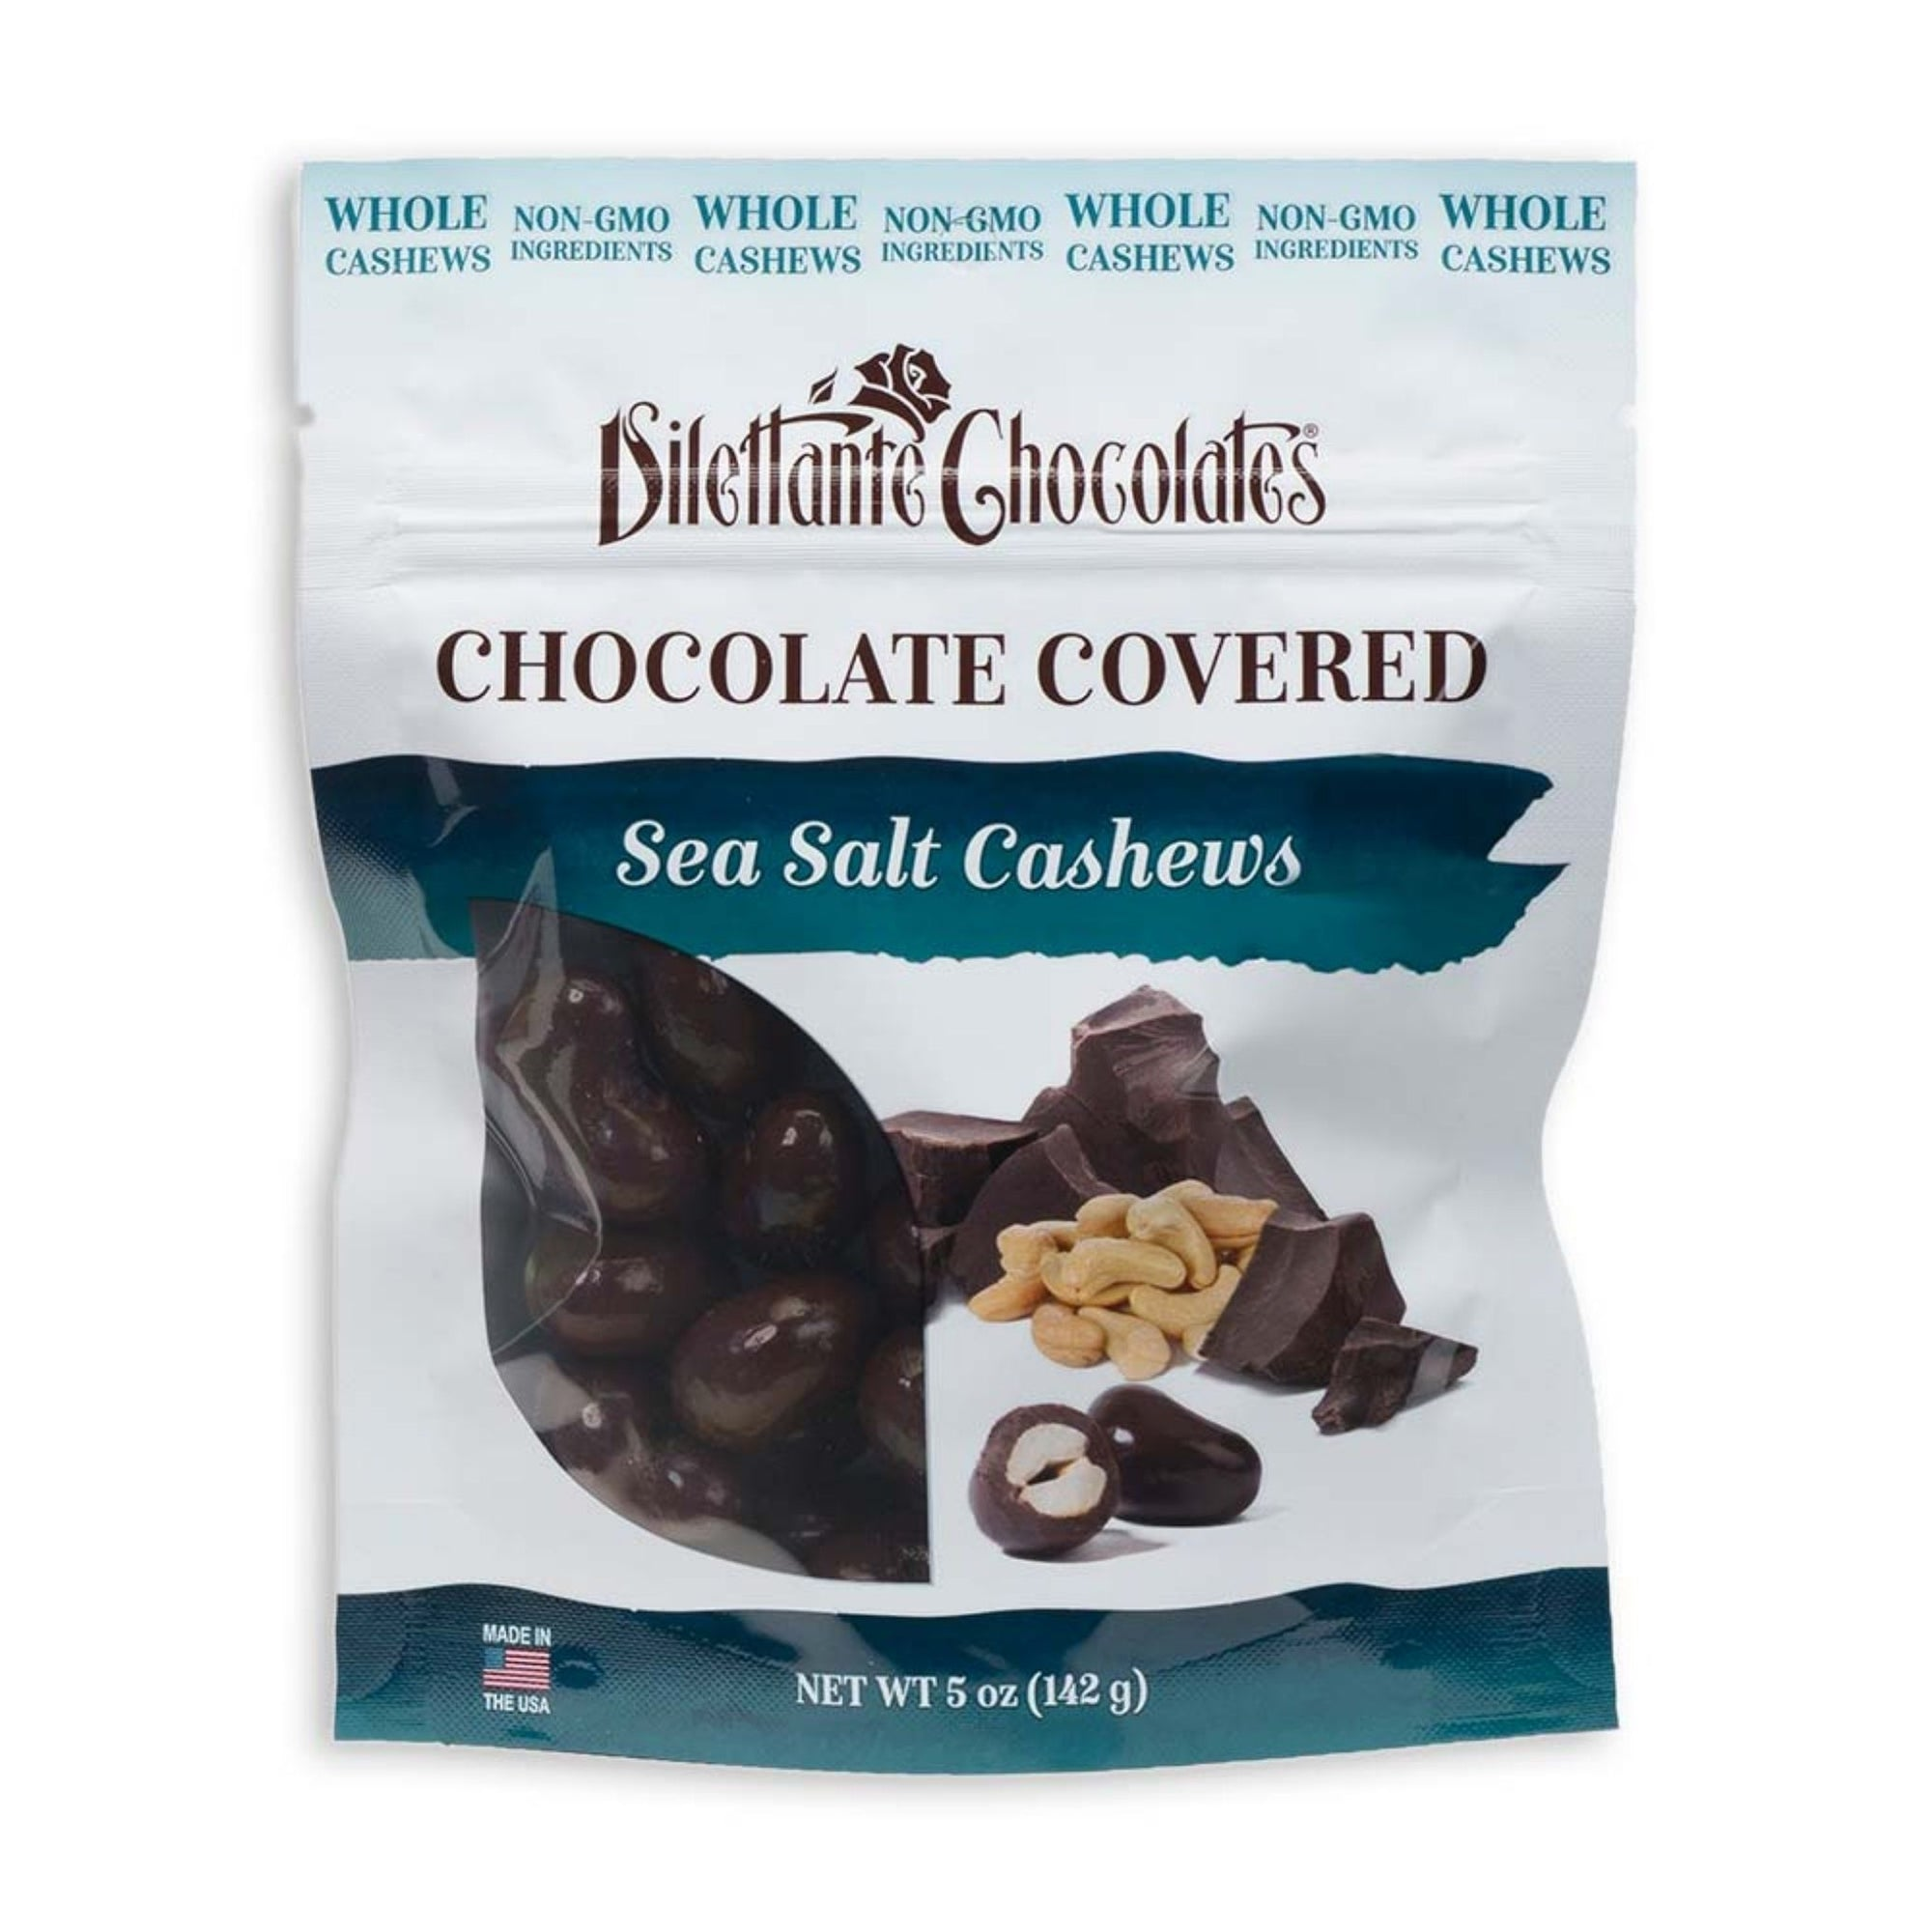 Dilettante Chocolates Chocolate-Covered Sea Salt Cashews in a 5-Ounce Bag